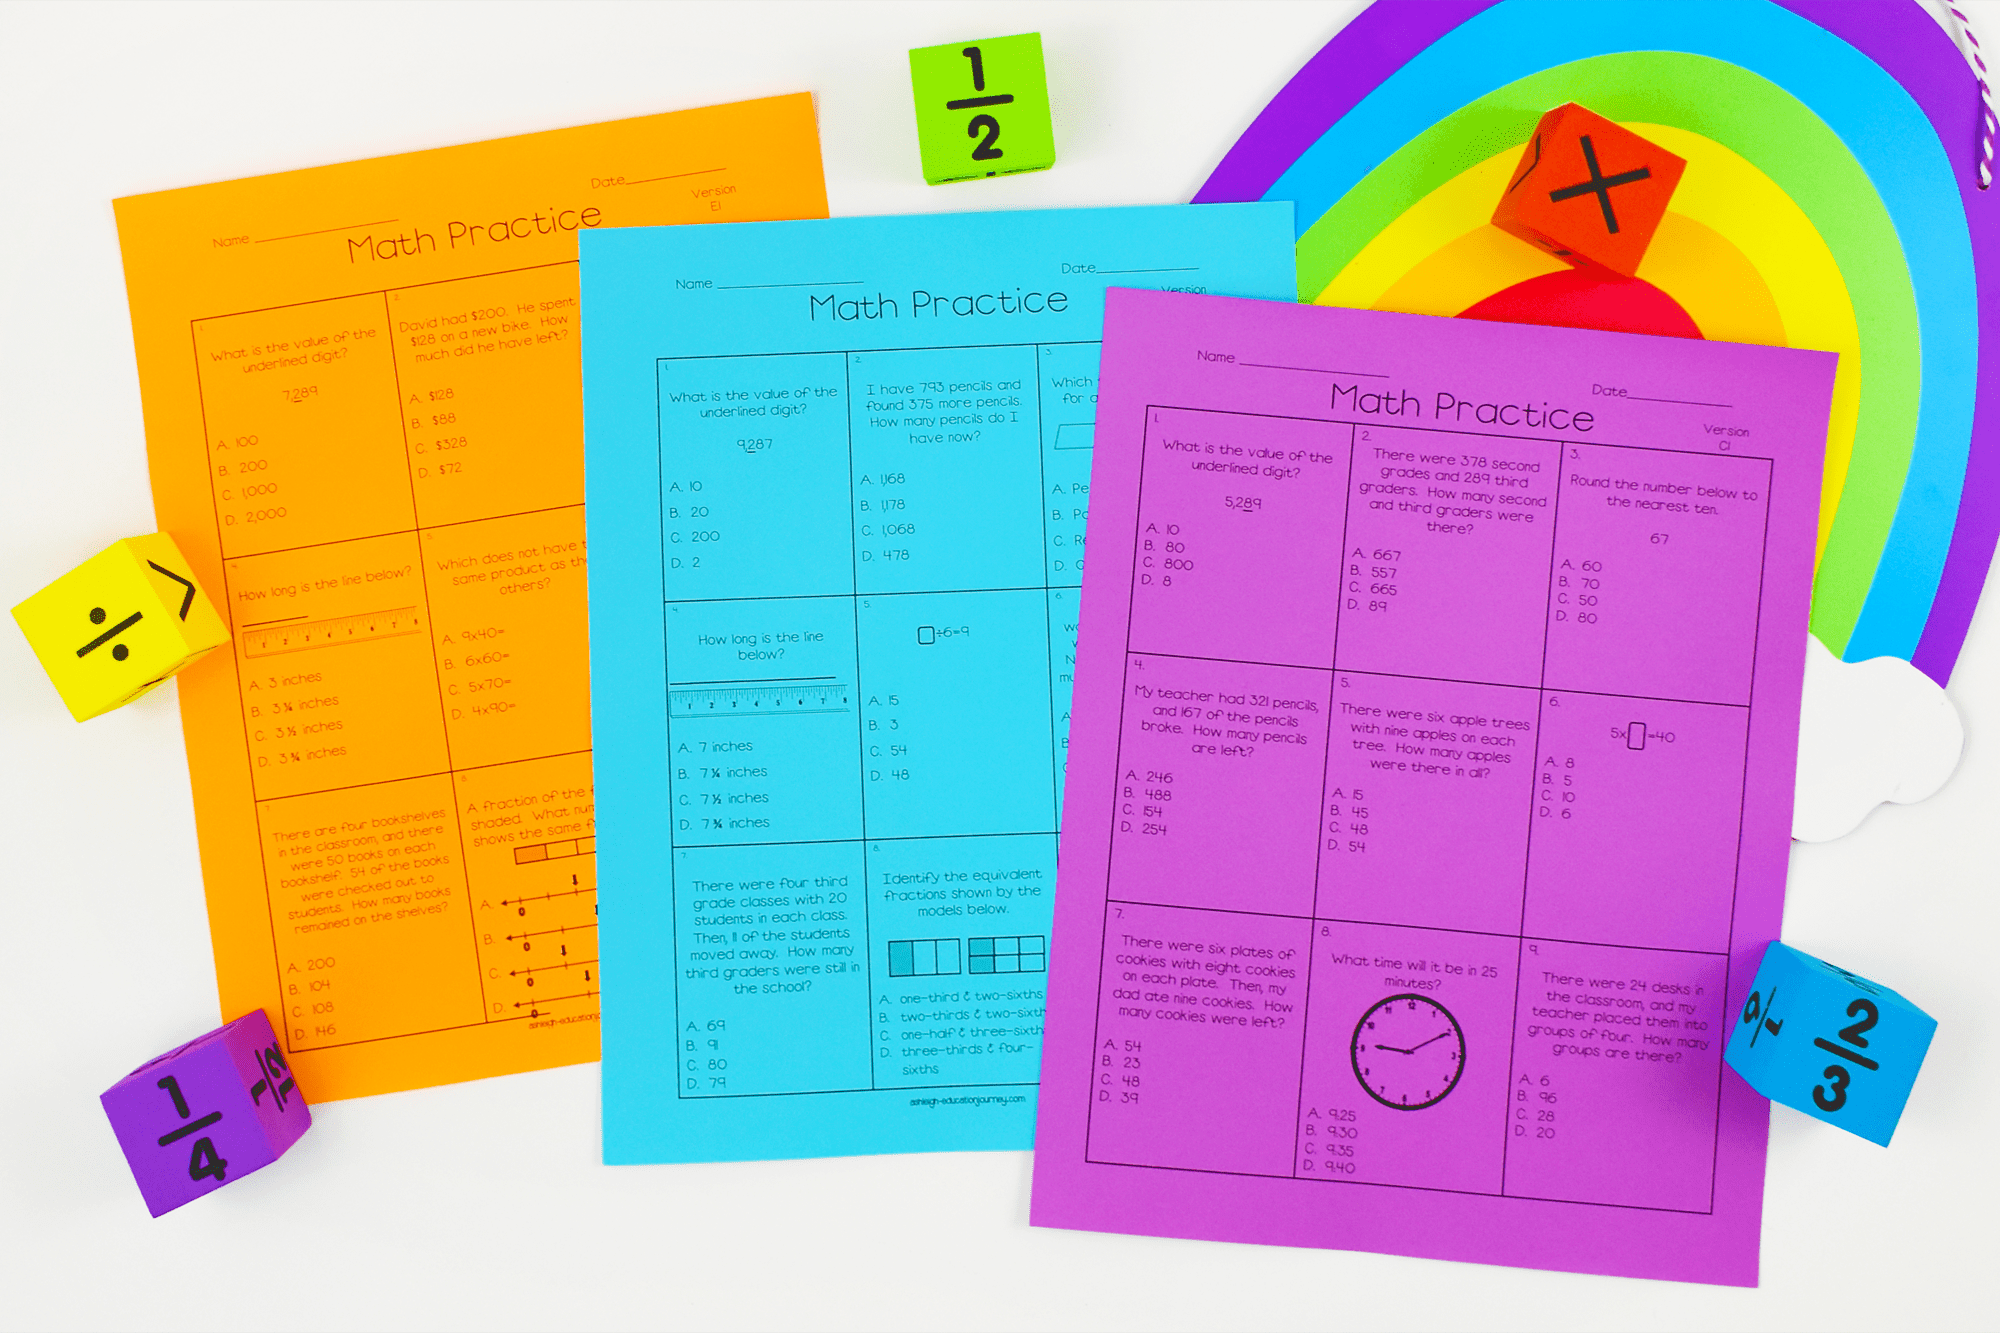 Colorful math practice worksheets on a white table